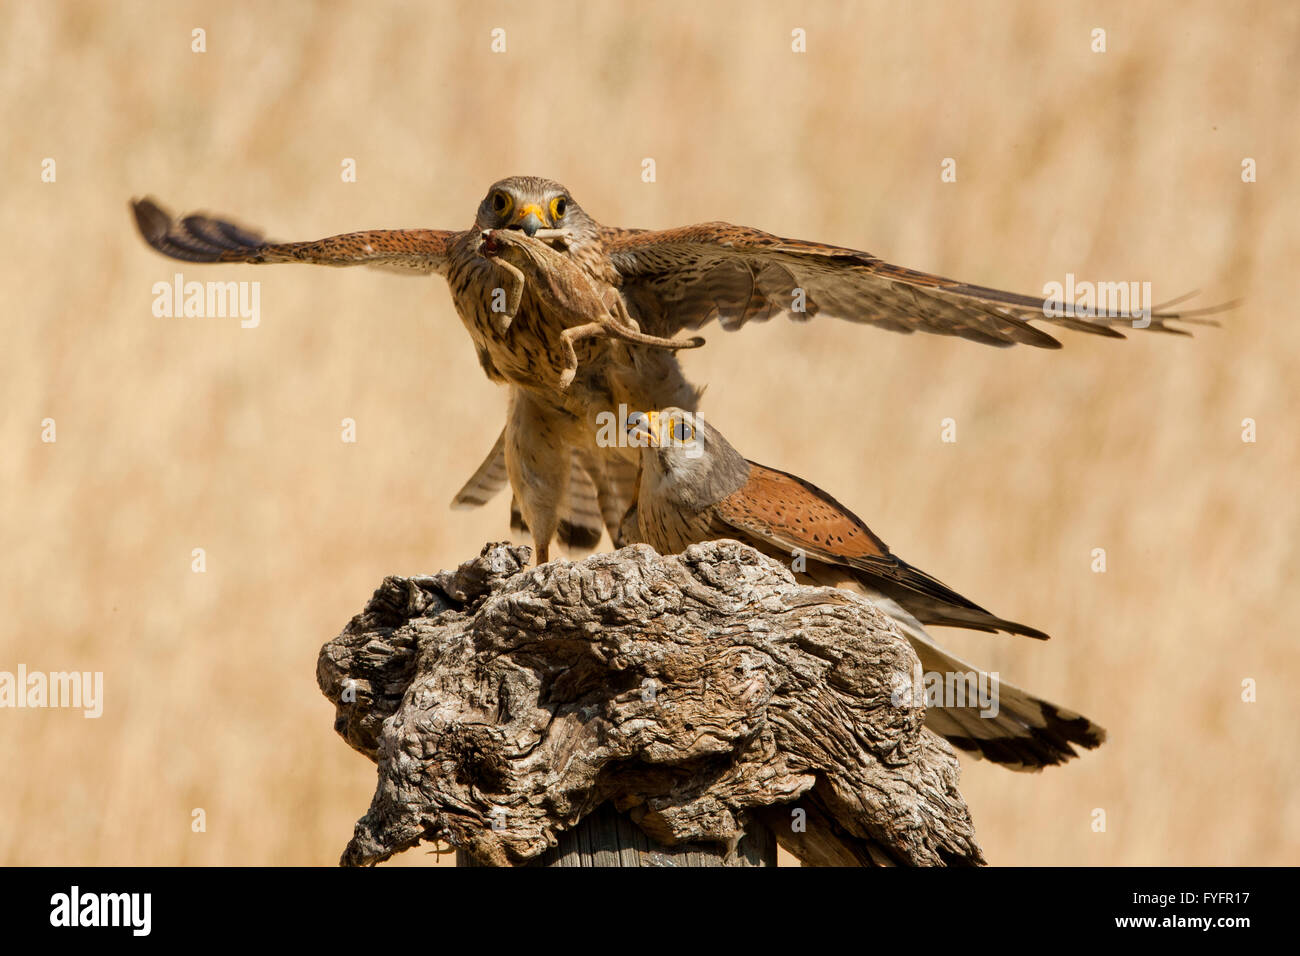 Common kestrel (Falco tinnunculus) female flies off with a chameleon caught by the male. This bird of prey is a Stock Photo